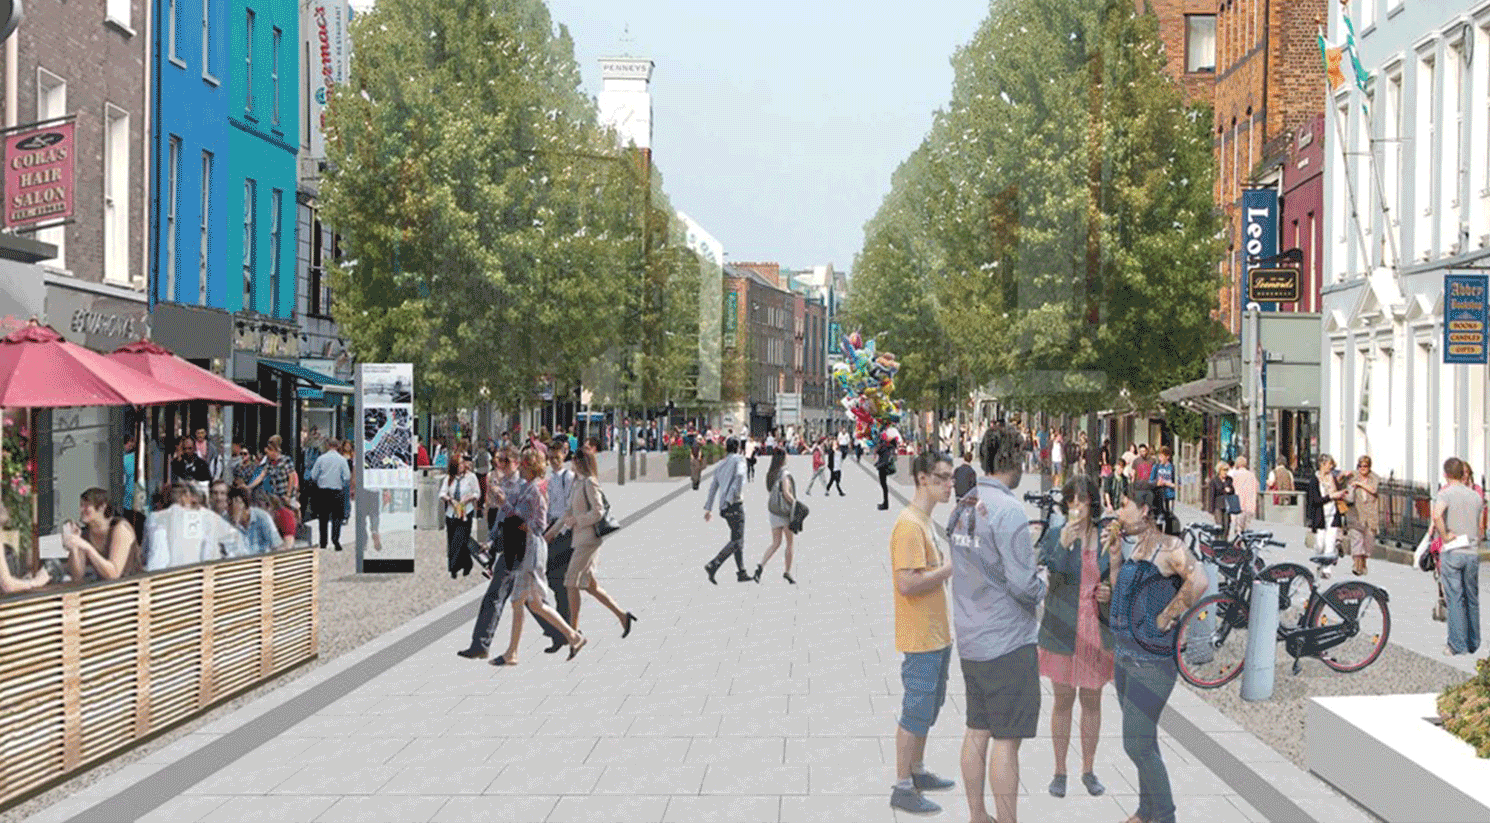 The Limerick Urban Centre Revitalisation – O'Connell